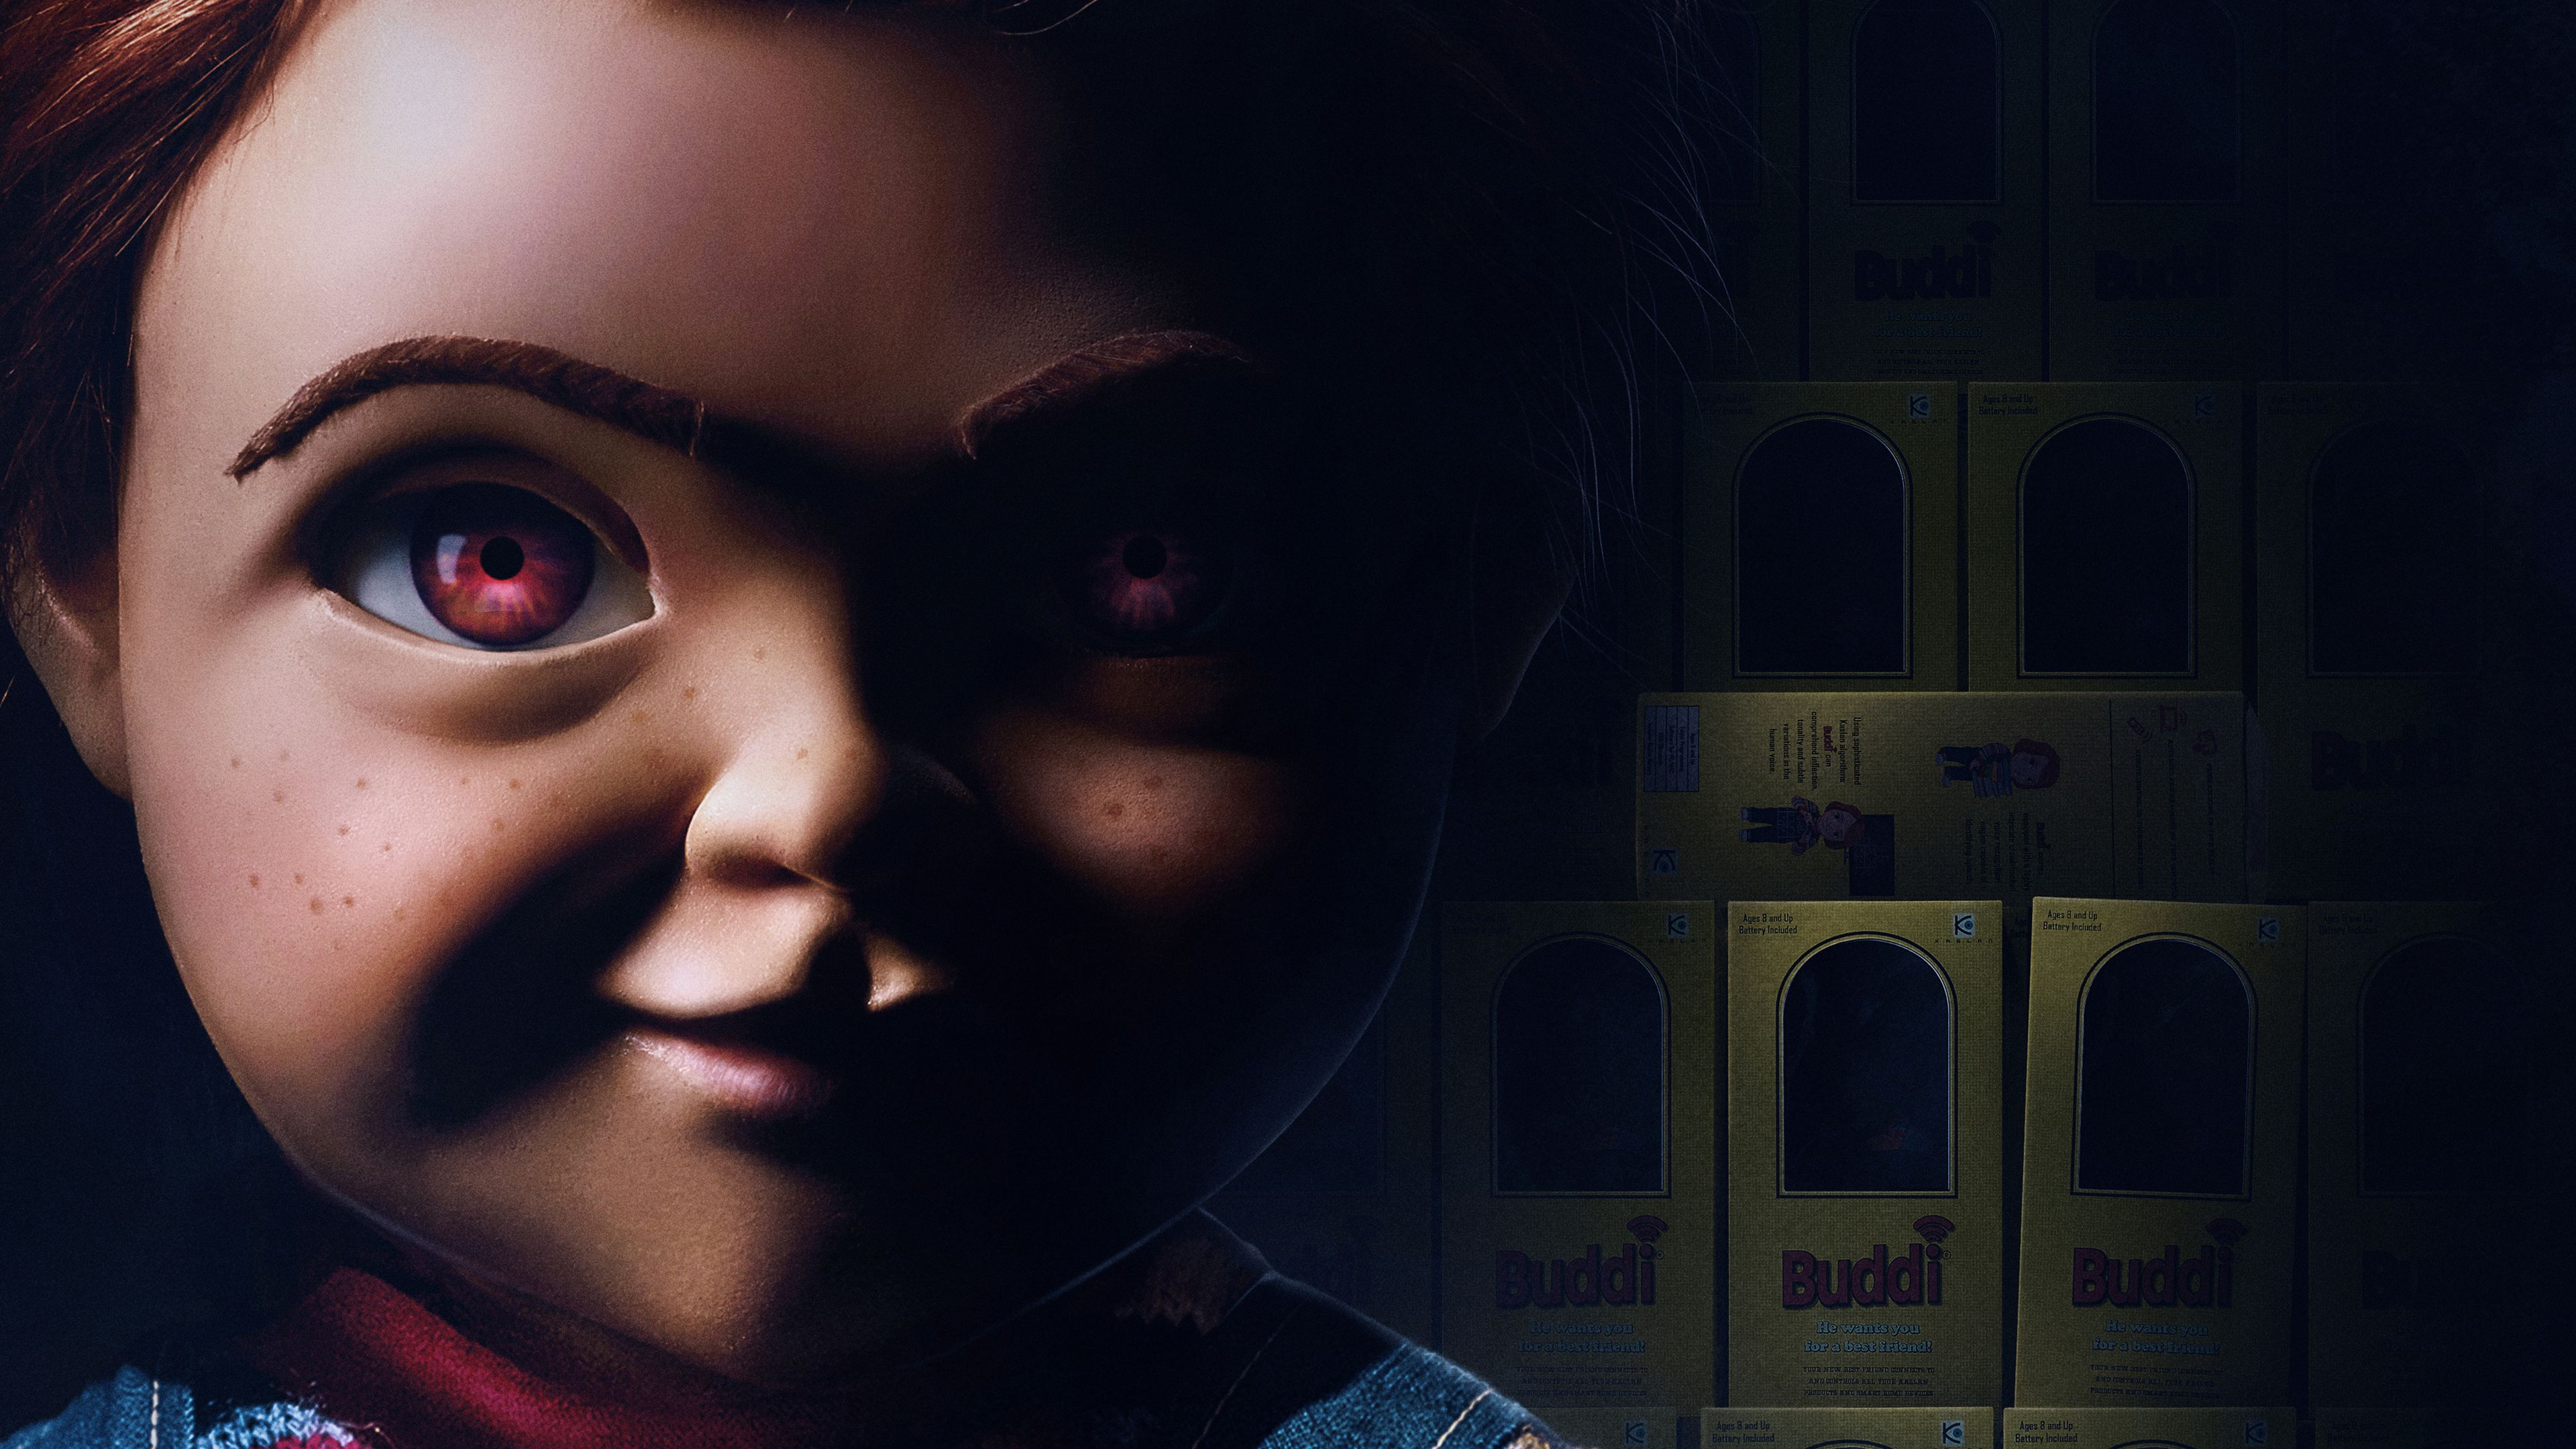 Childs Play 2019 4k Movies Wallpapers Hd Wallpapers Childs Play Wallpapers 4k Wallpapers 2018 Movies Wallpaper Kids Playing Misery Movie Child S Play Movie